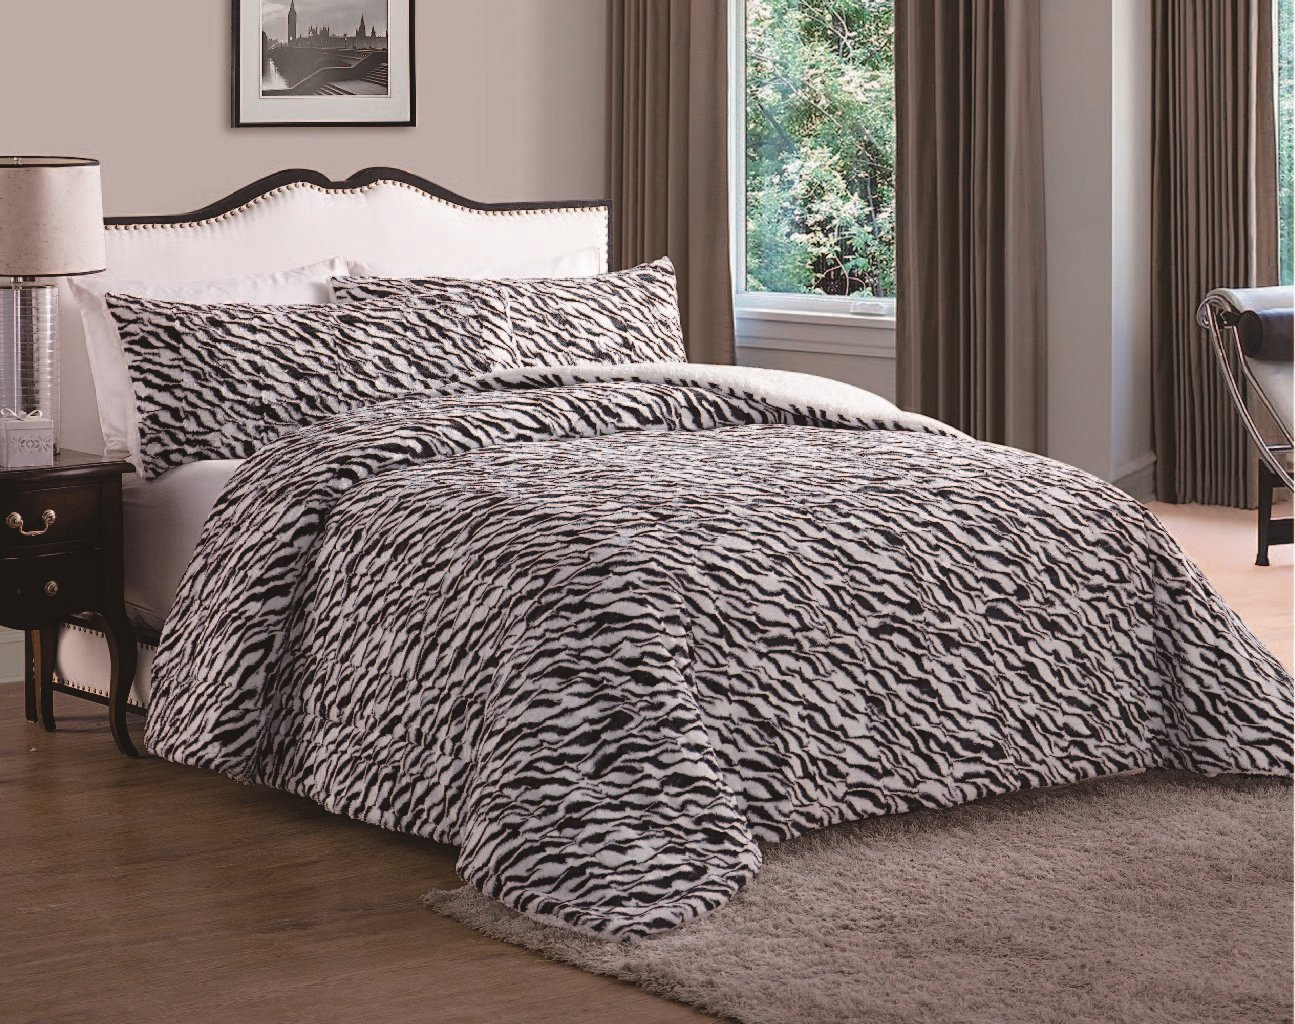 Luxury Home Animal Comforter,Black King